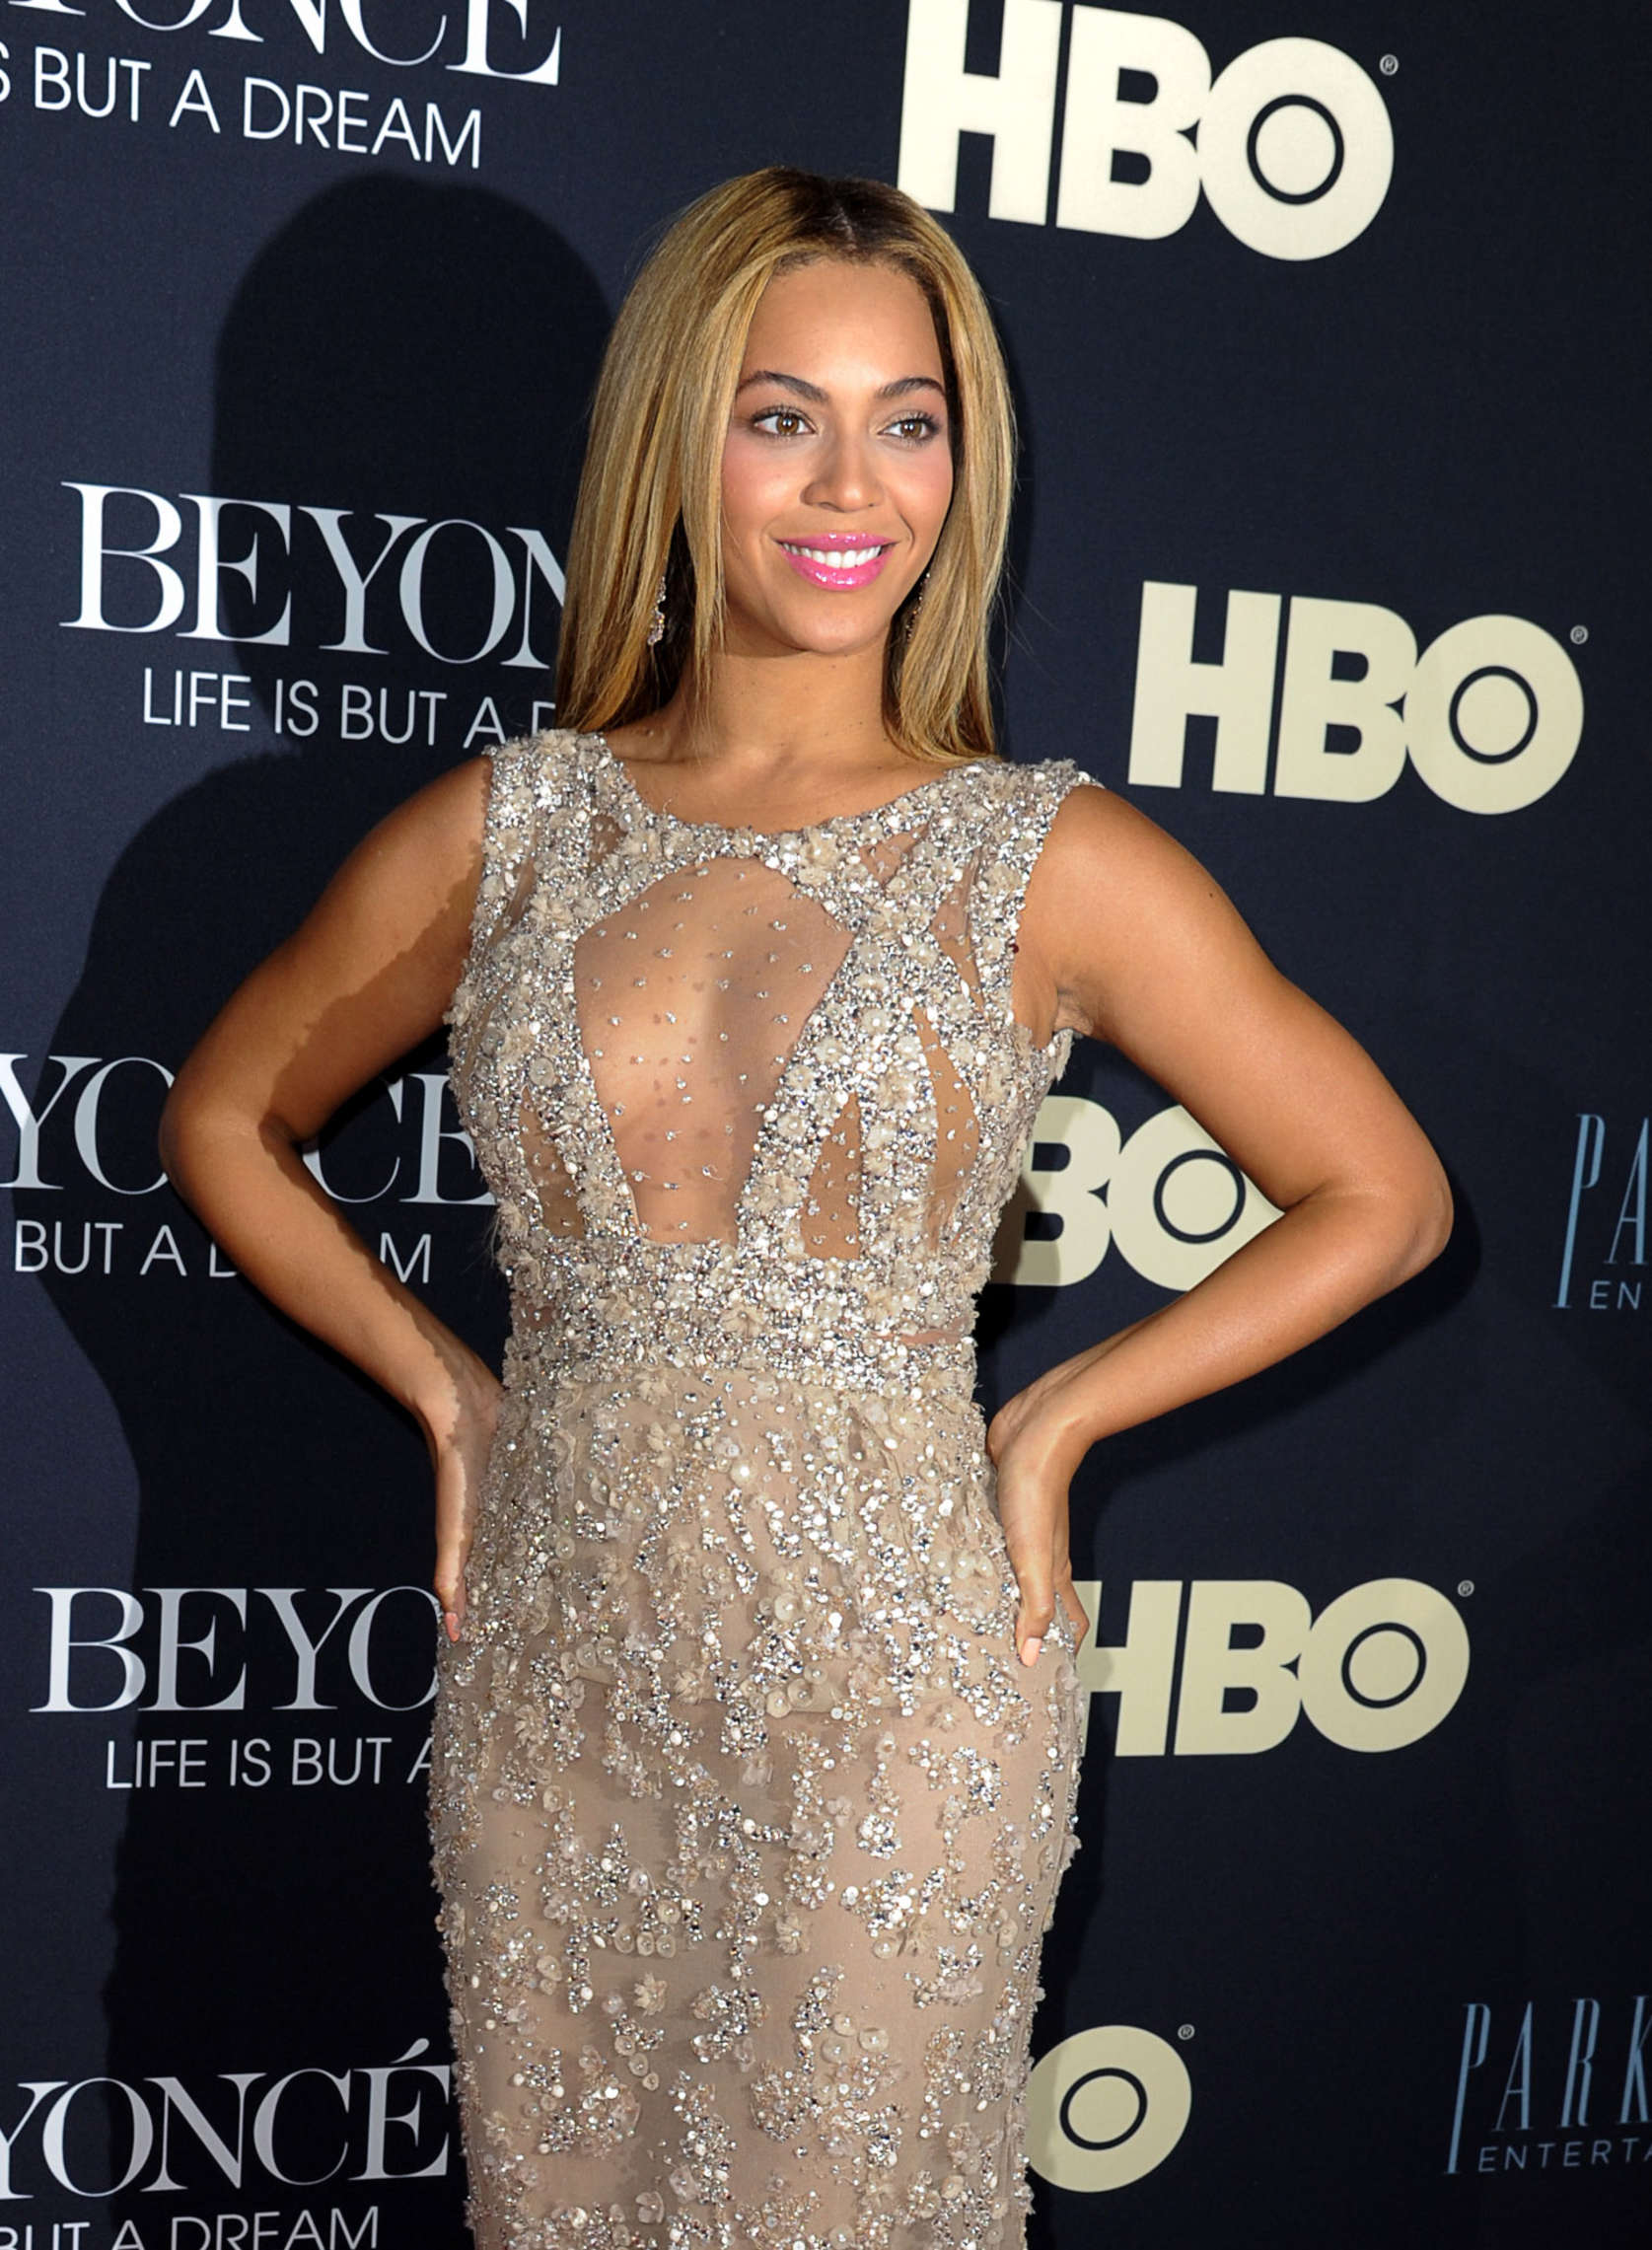 thru see Beyonce knowles